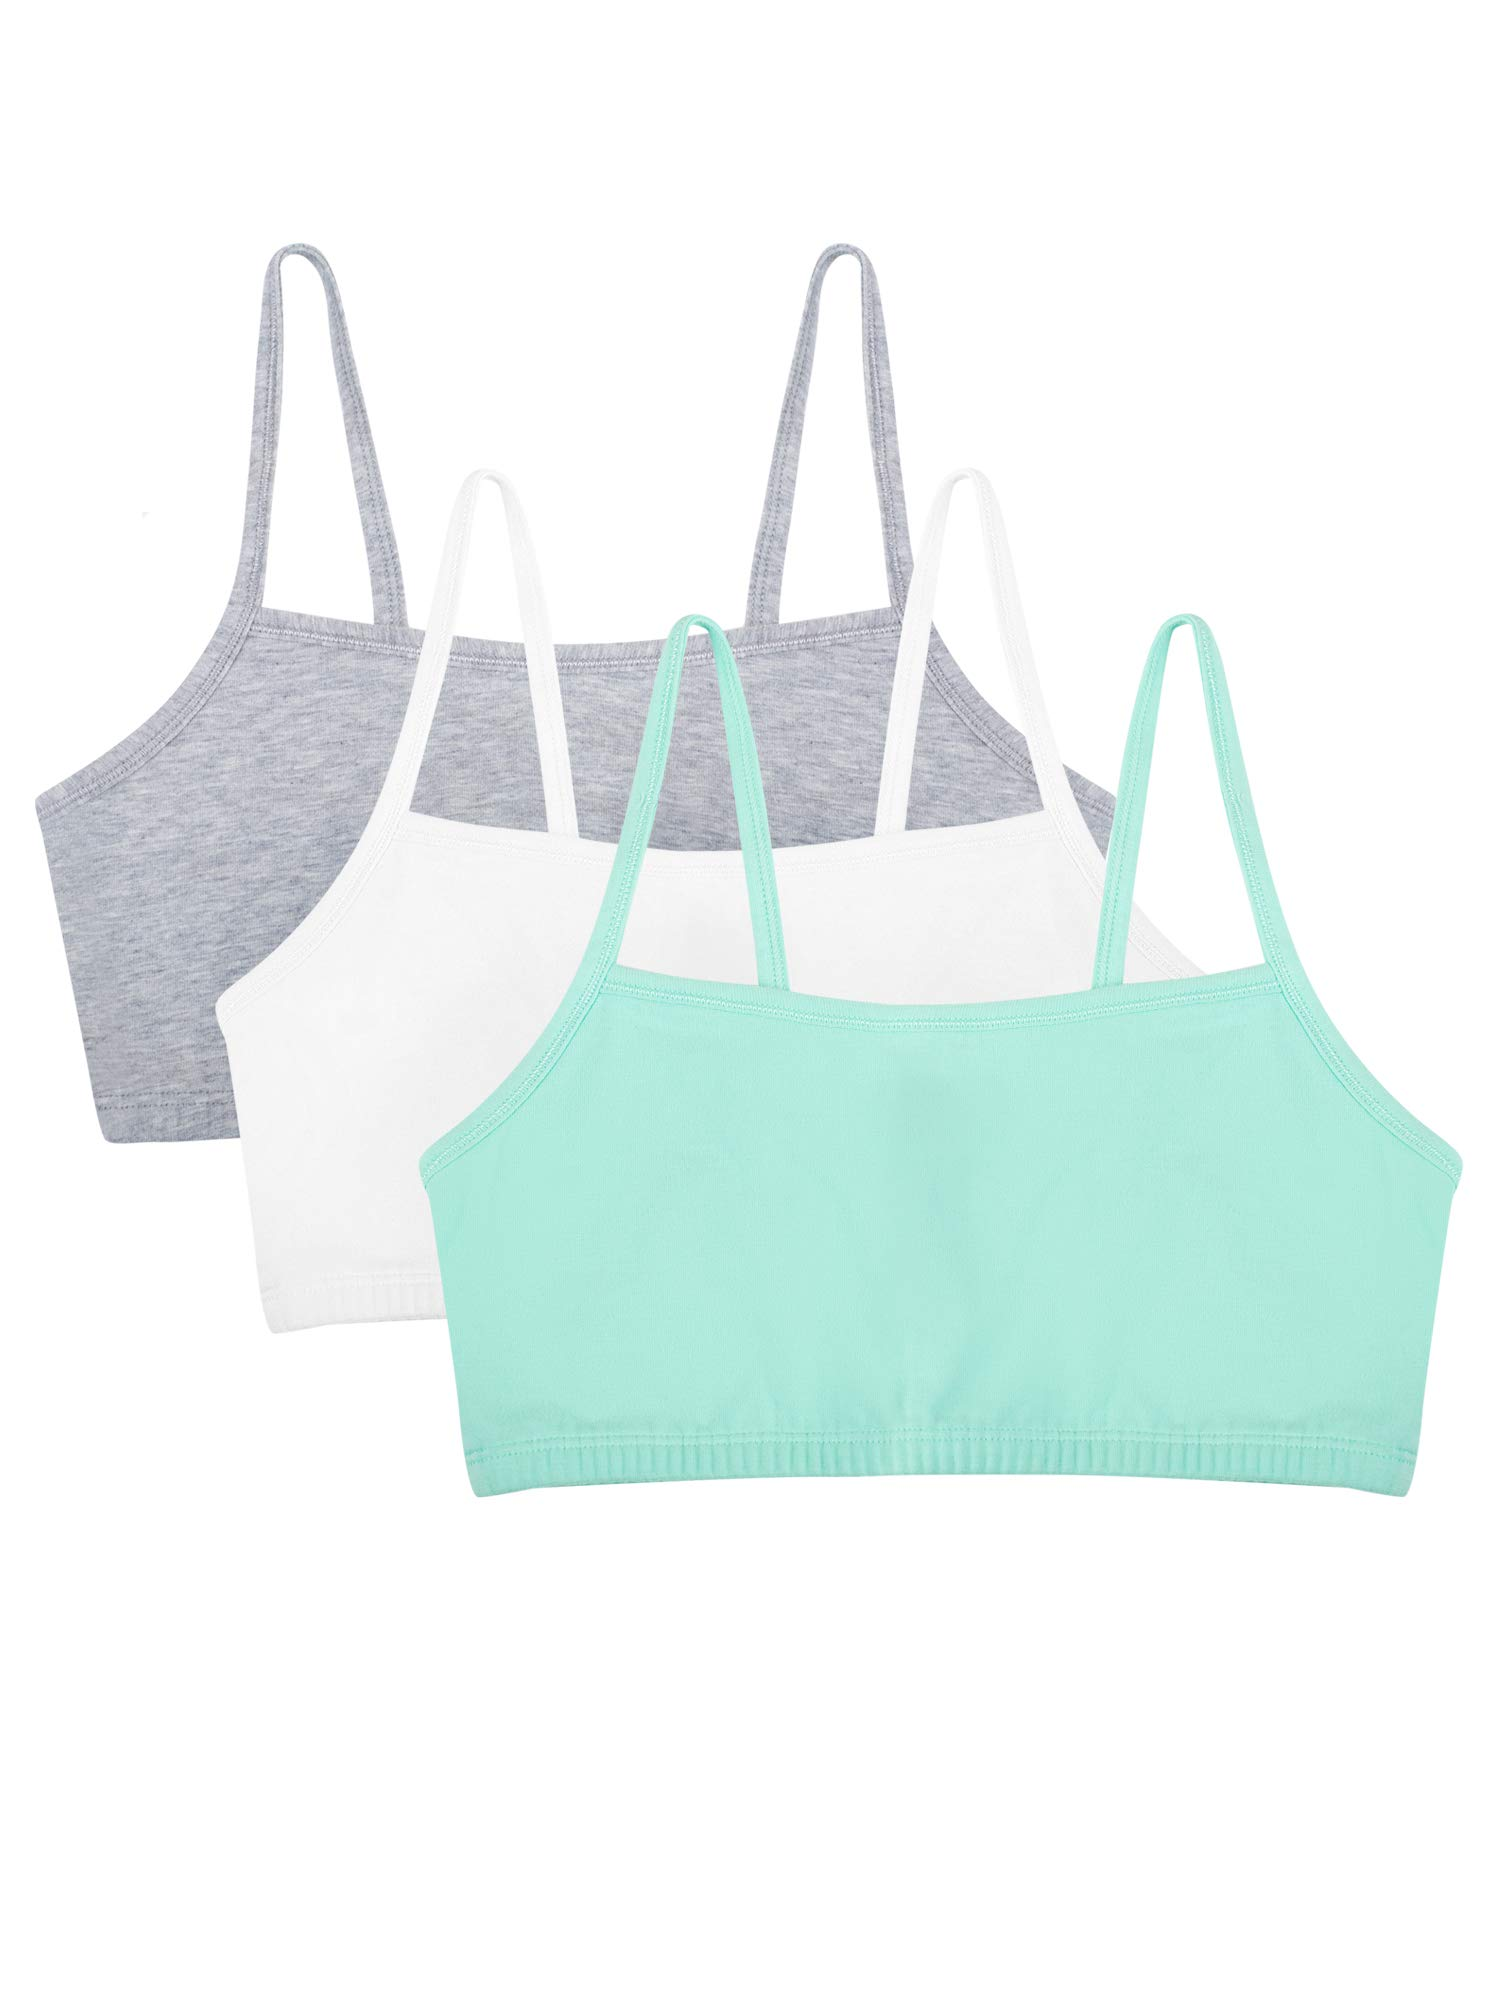 Fruit of the Loom womens Cotton Pullover Sport Bra, mint chip/white/grey heather 32